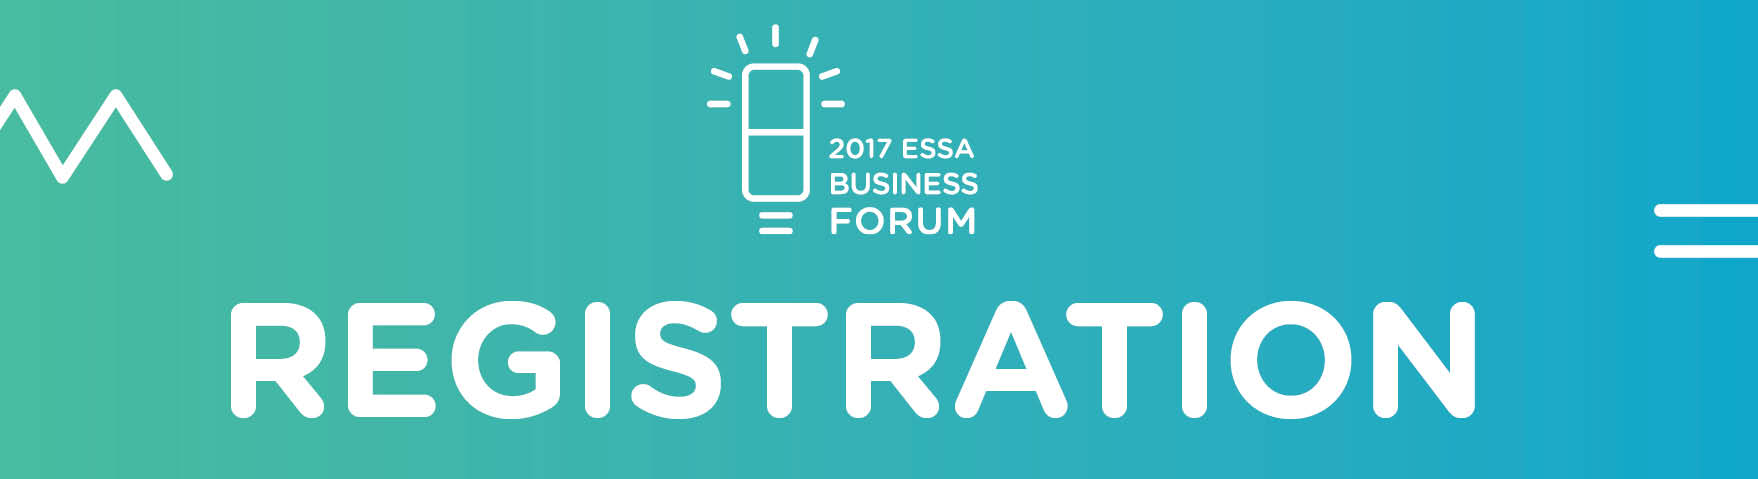 ESSA Business forum registration featured image banner_thin